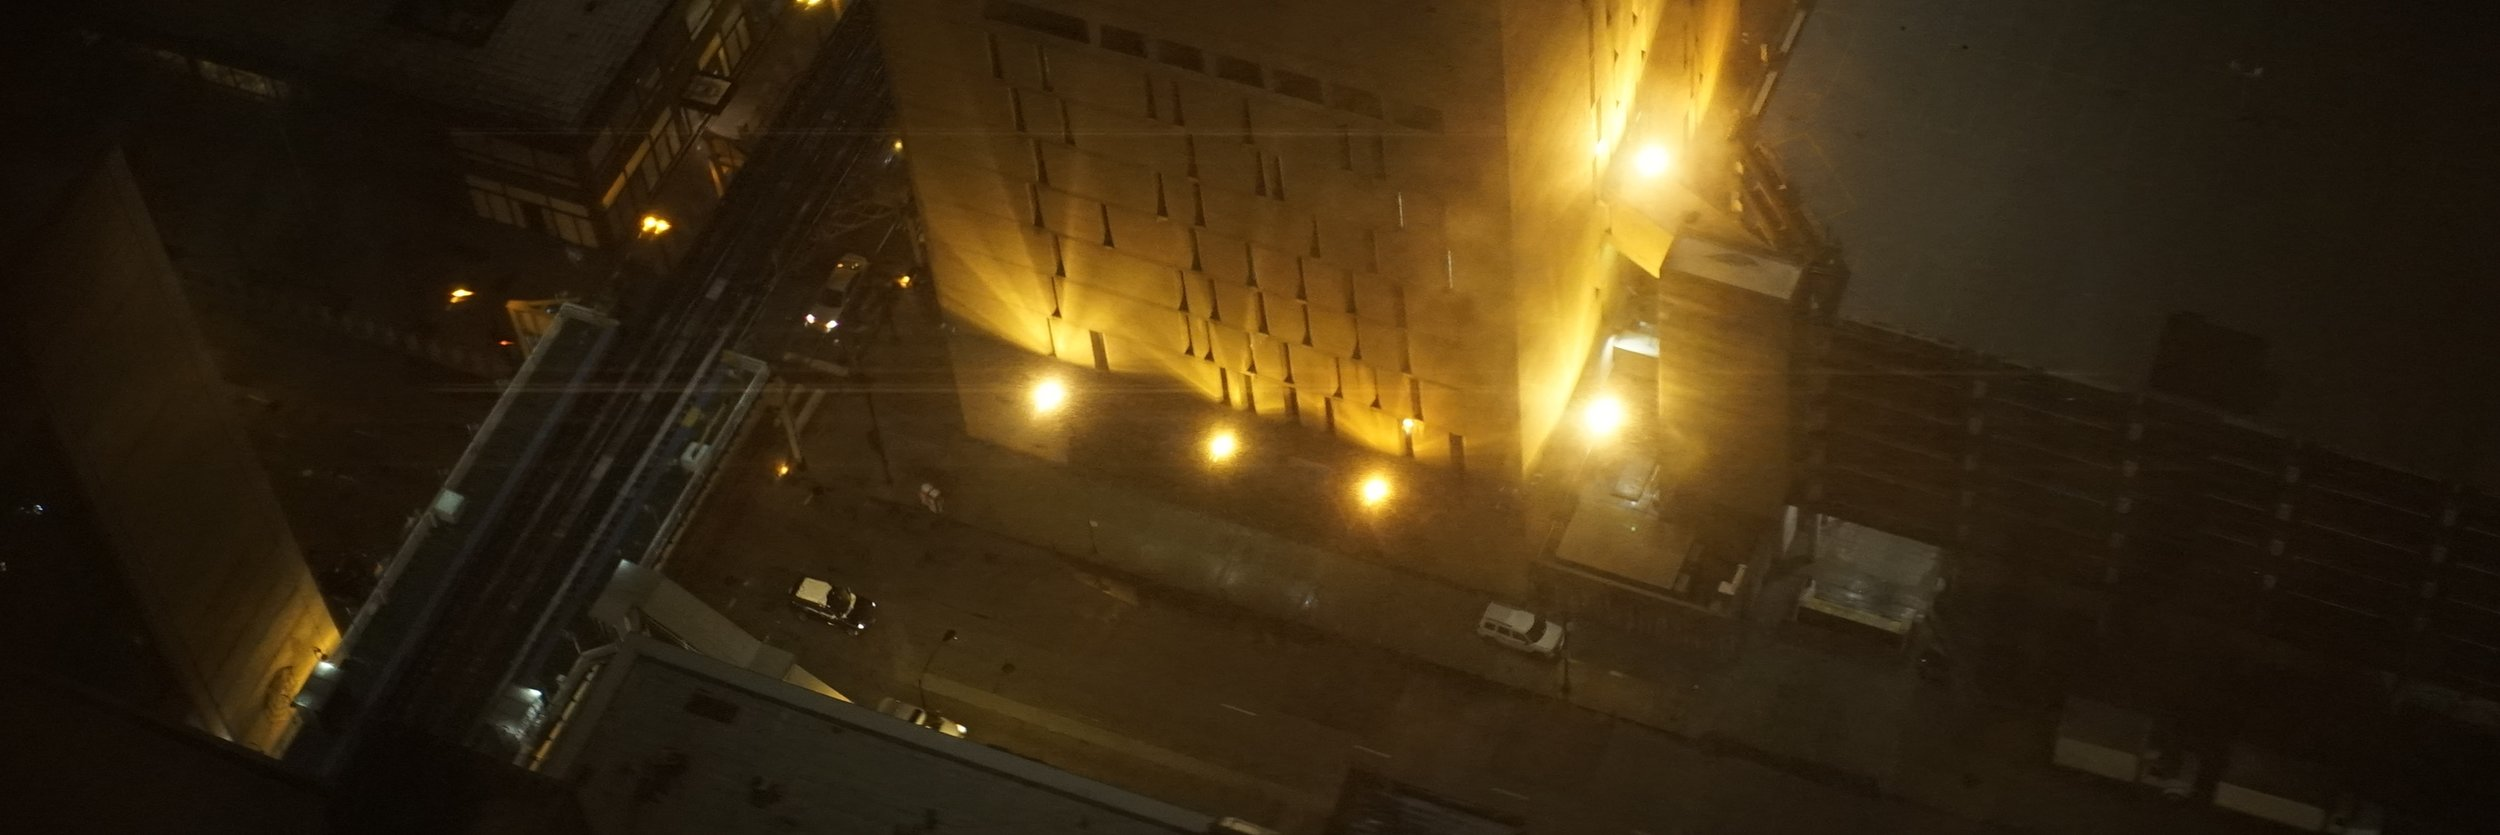 Lomo 75mm Anamorphic Lens | Flares from the base of a correctional facility in downtown Chicago, IL. - Photo by: Keith Nickoson